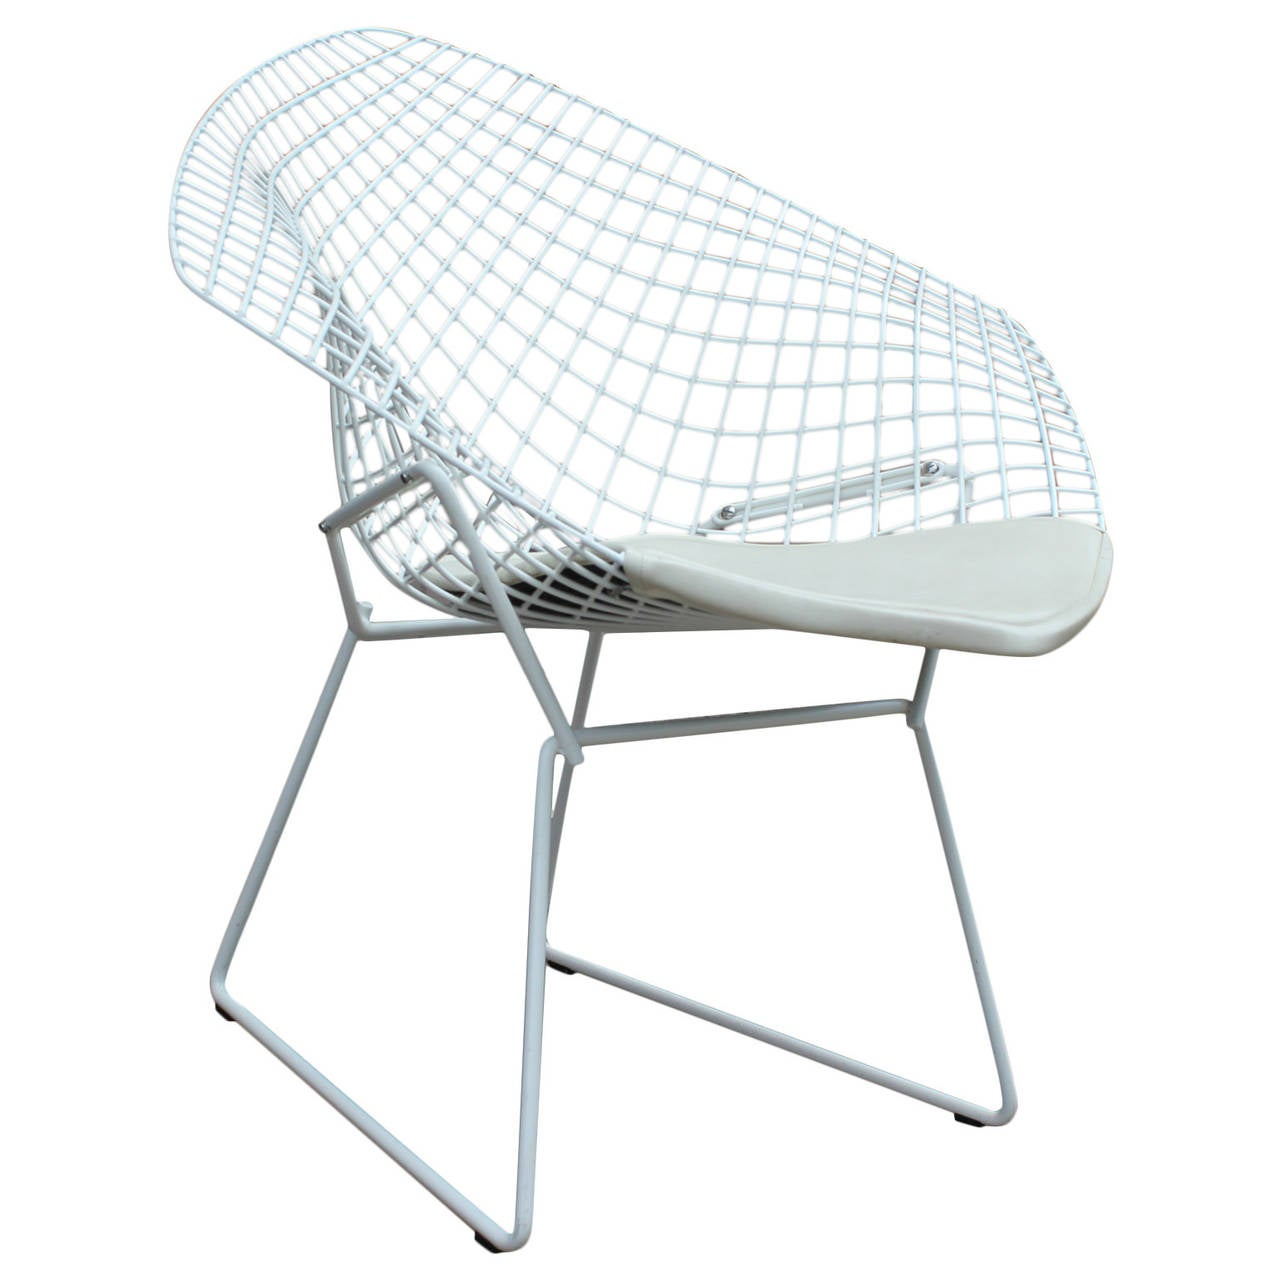 Bertoia diamond chair black - White Diamond Chair By Harry Bertoia For Knoll 1